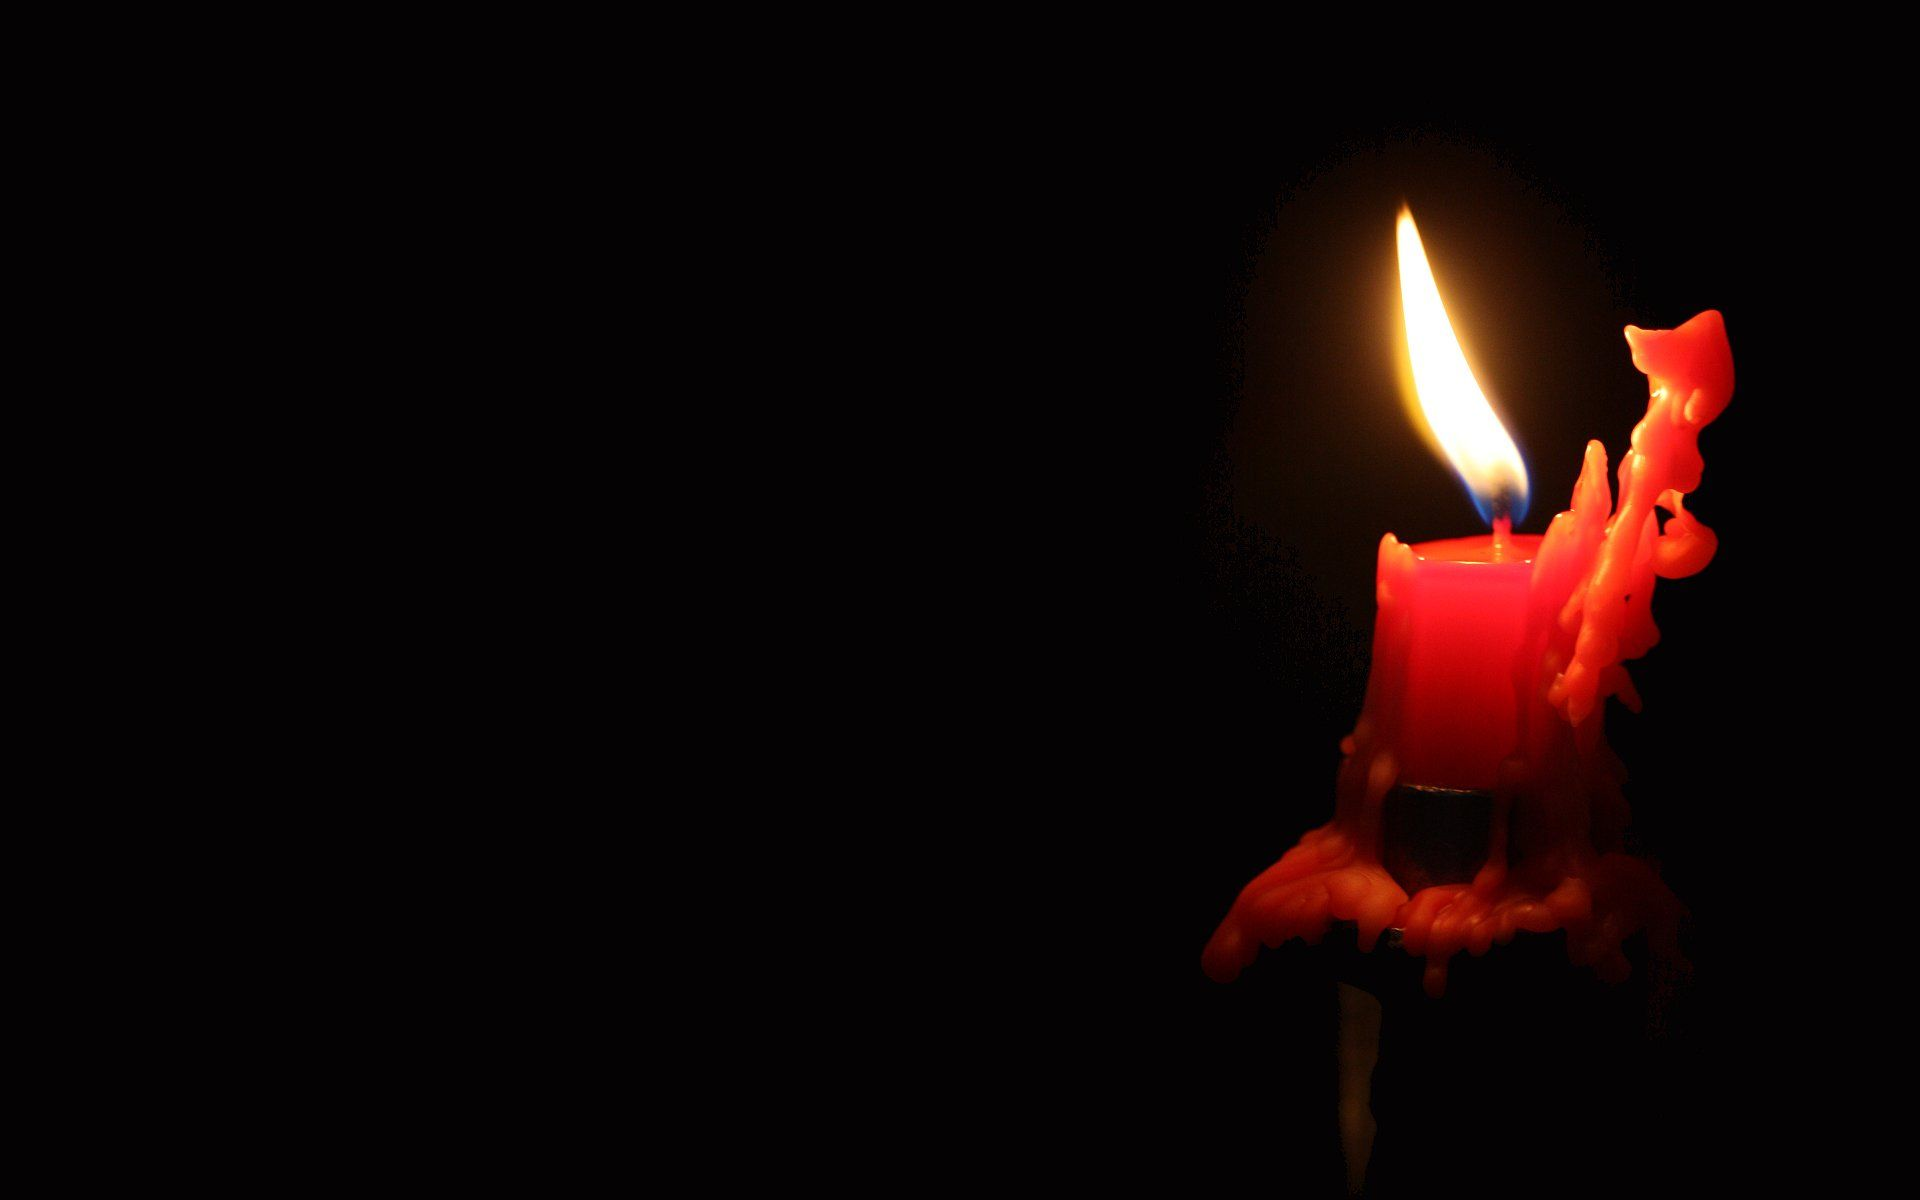 3d Candle Wallpaper Http Wallpapers Ae 3d Candle Wallpaper Html Candles Wallpaper Candles Candle In The Dark